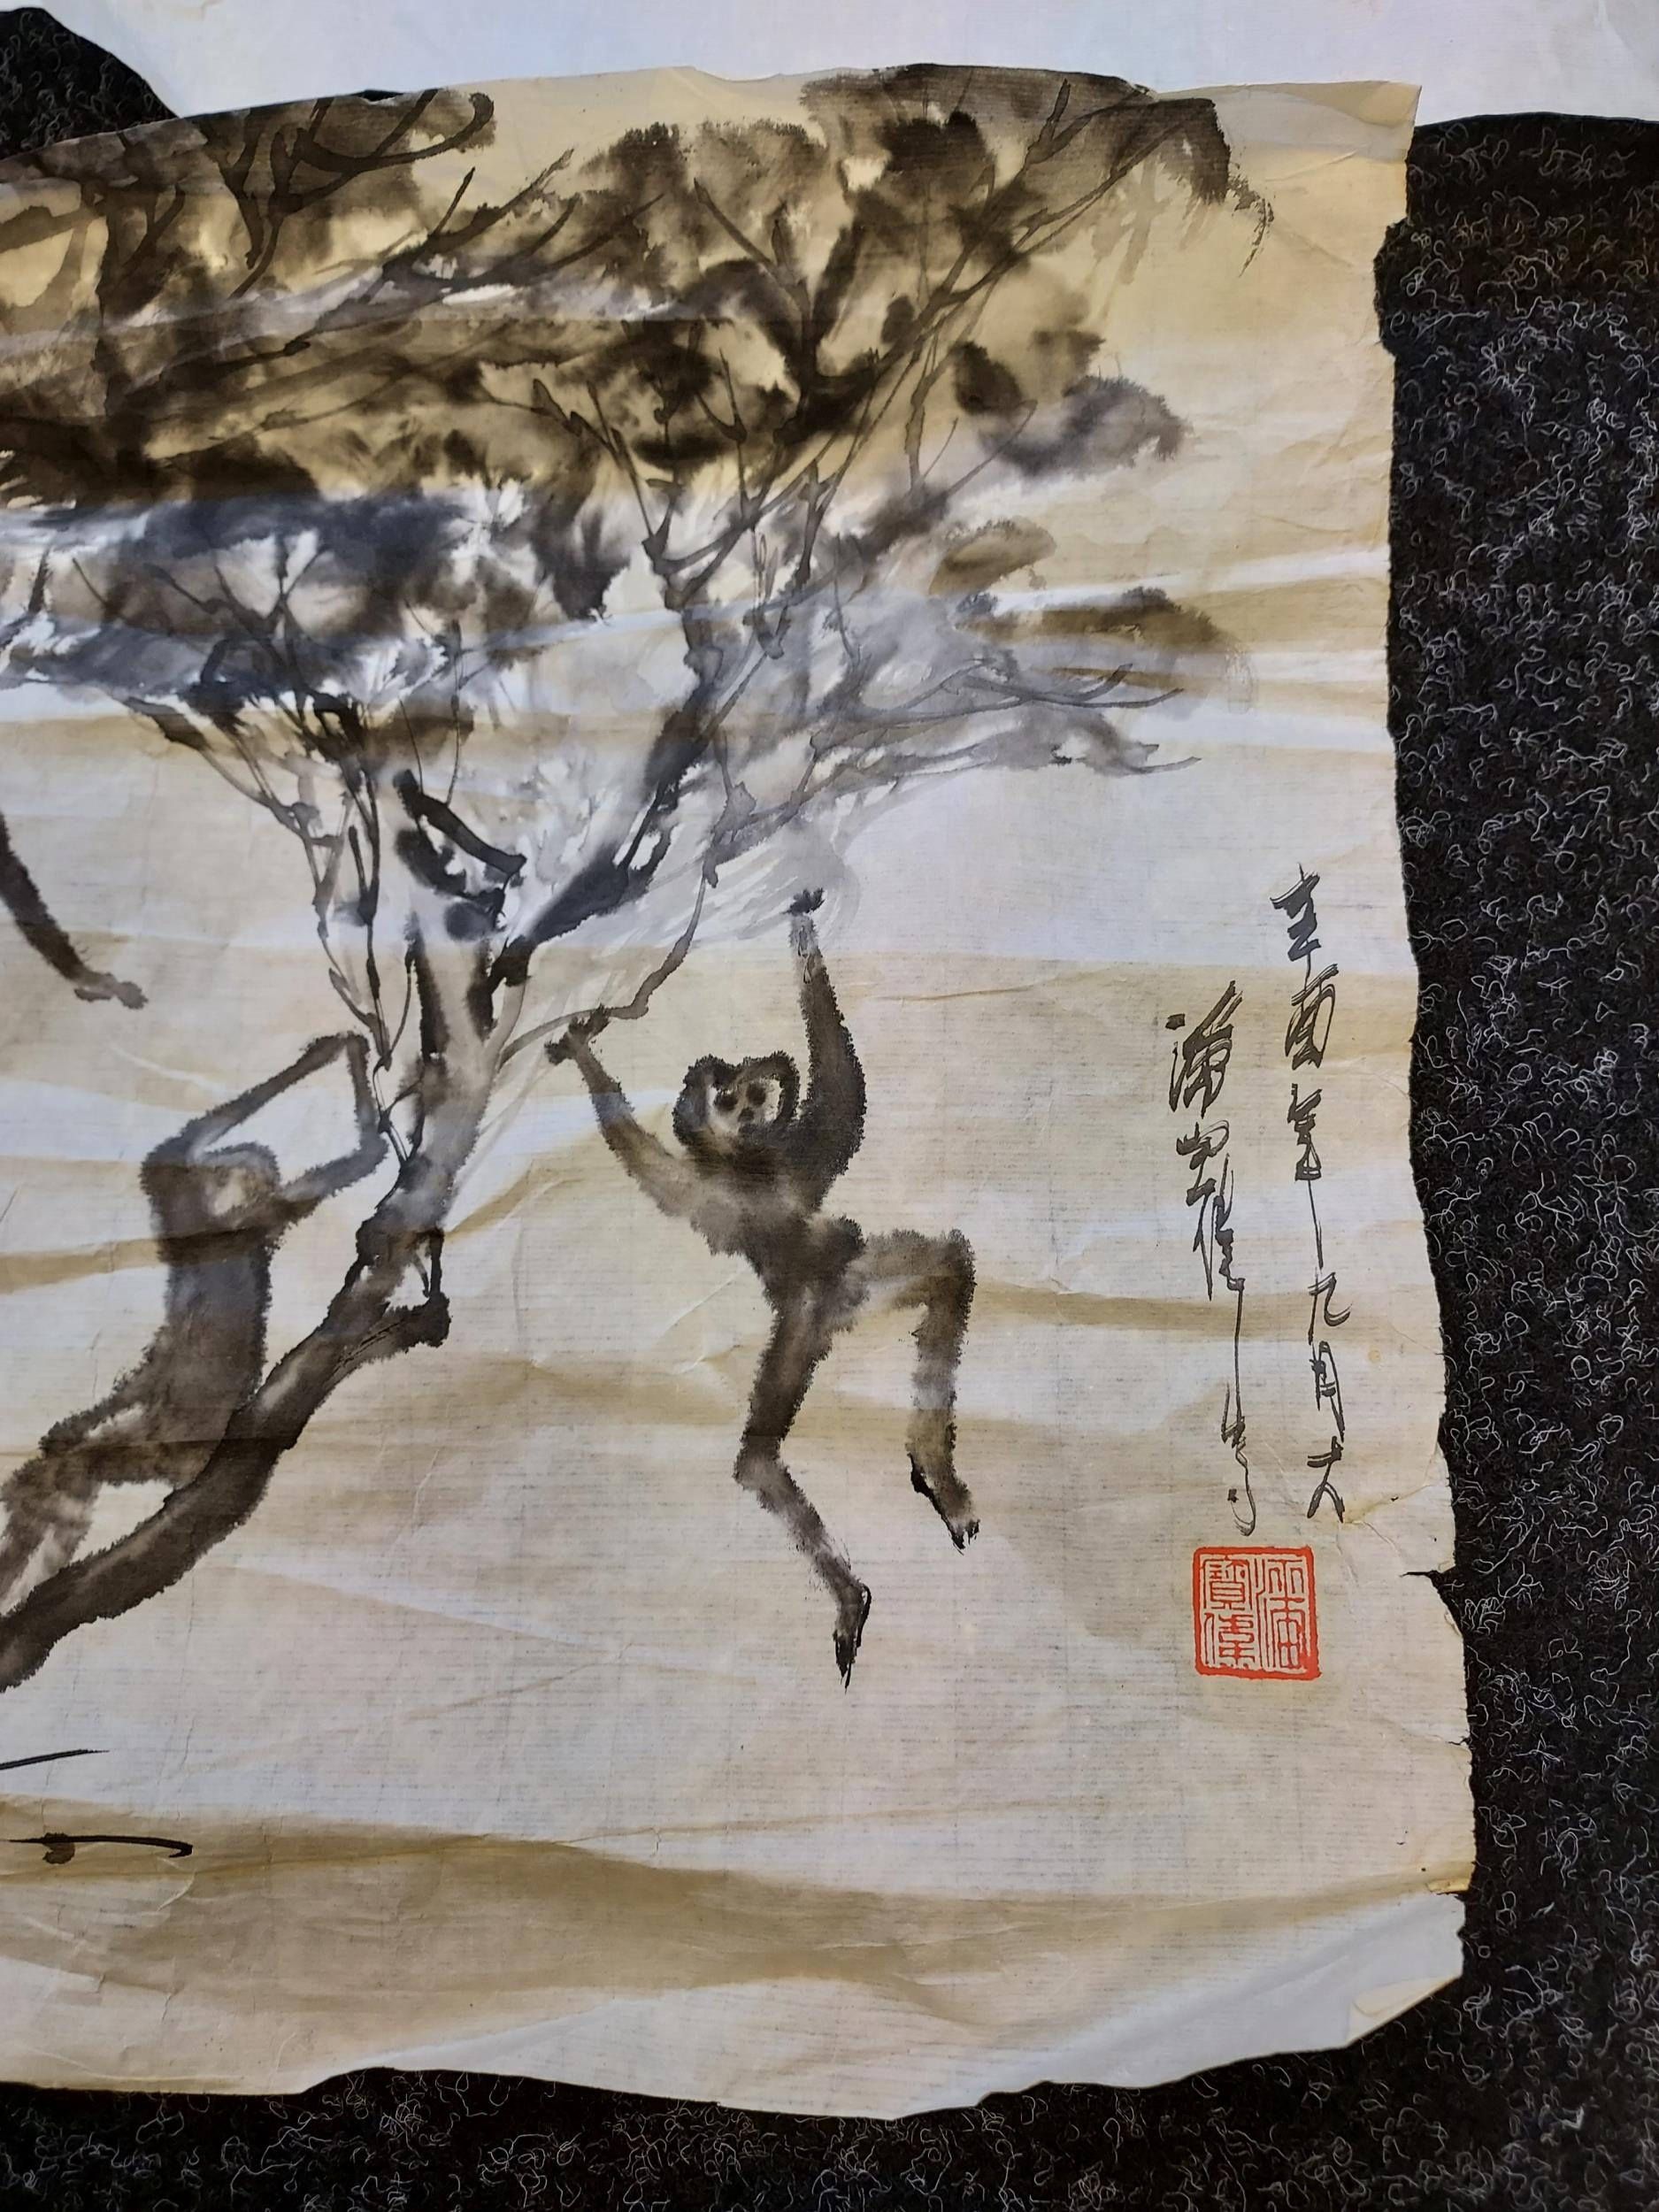 A selection of Japanese ink wash paintings depicting various monkey figures [signed by artist] - Image 2 of 4